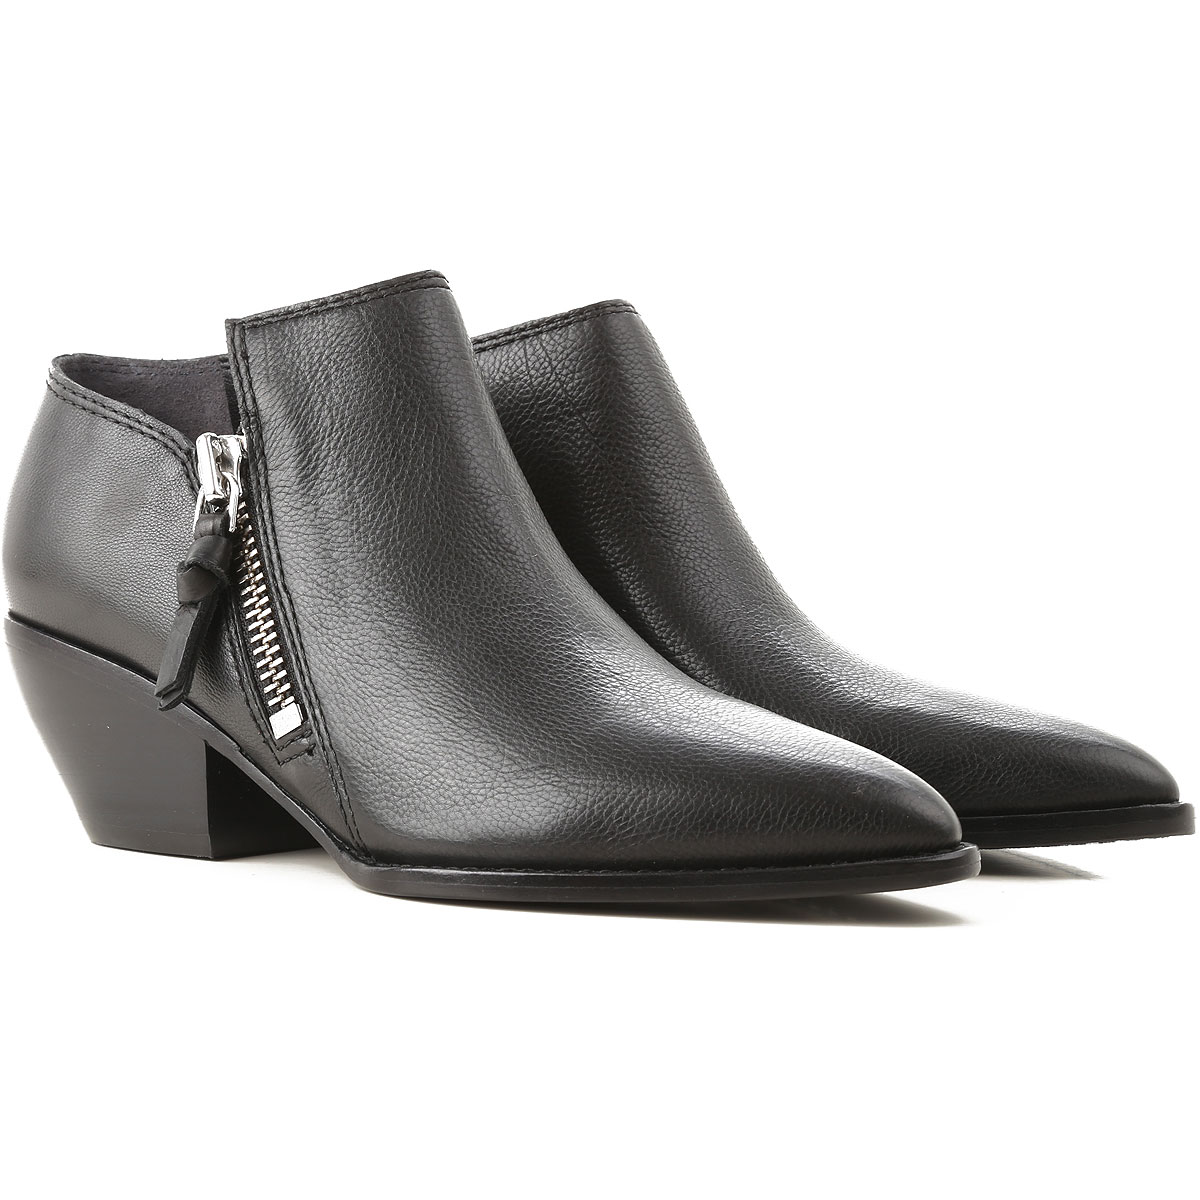 Image of Sigerson Morrison Boots for Women, Booties, Black, Leather, 2017, 7 8